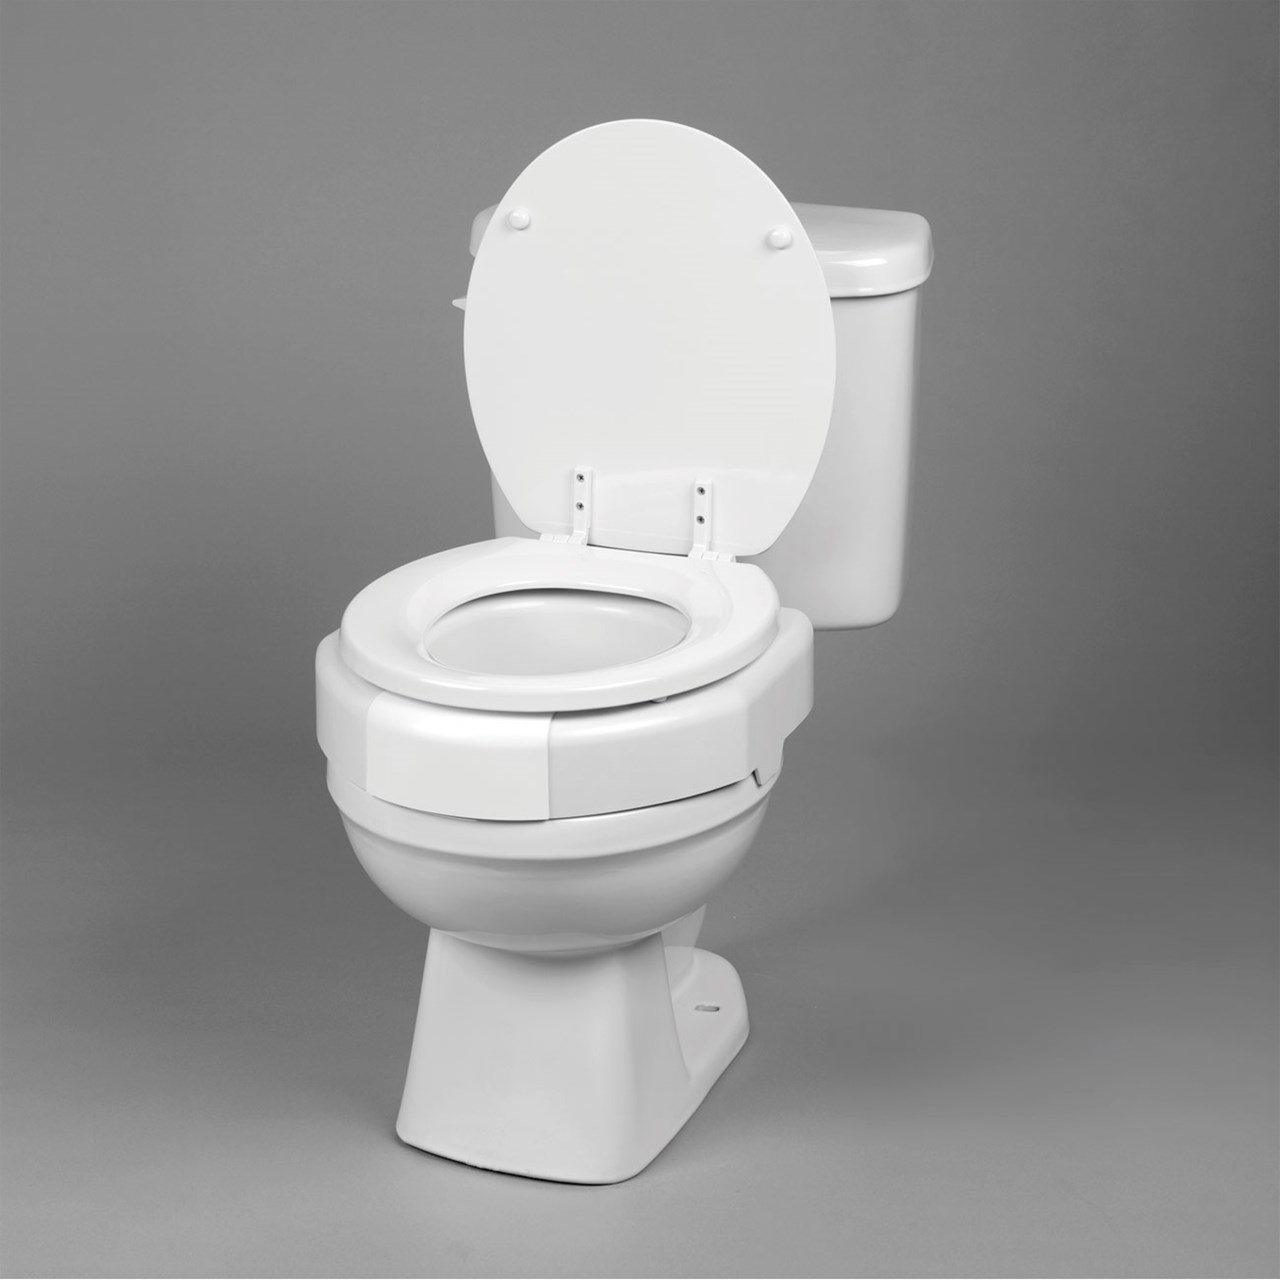 Incredible Secure Bolt Elevated Toilet Seat Camellatalisay Diy Chair Ideas Camellatalisaycom